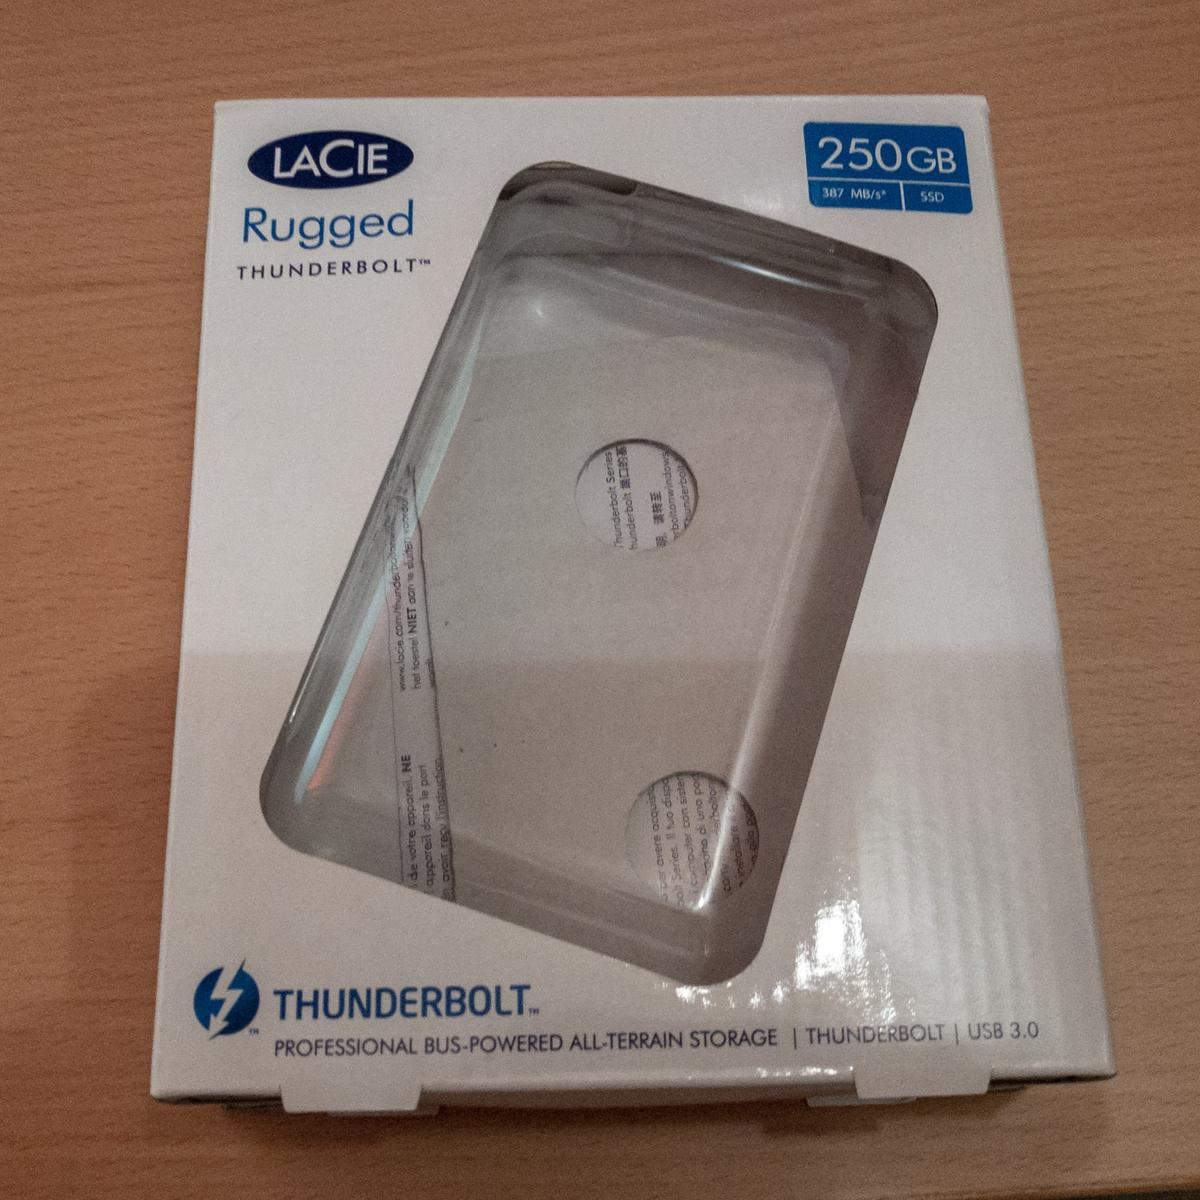 LaCie Rugged Thunderbolt 250 GB External SSD in E6 London